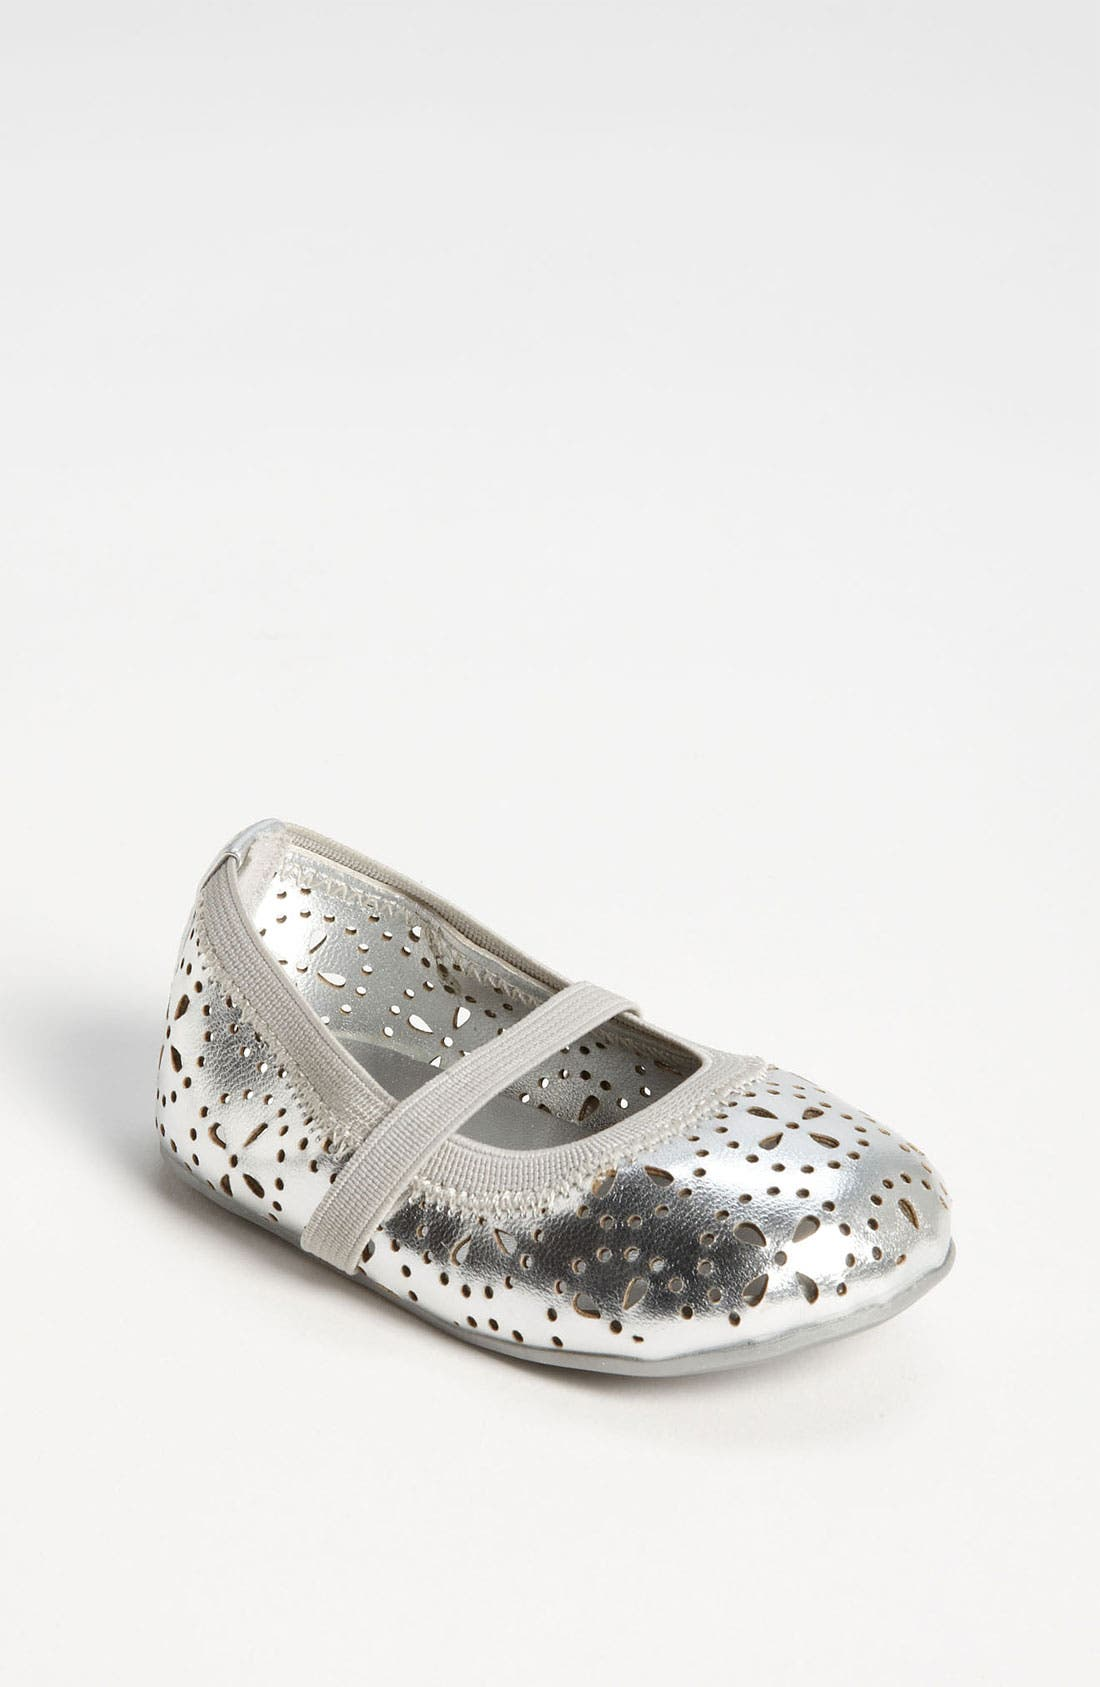 Alternate Image 1 Selected - Stuart Weitzman 'Baby Greige' Flat (Baby)